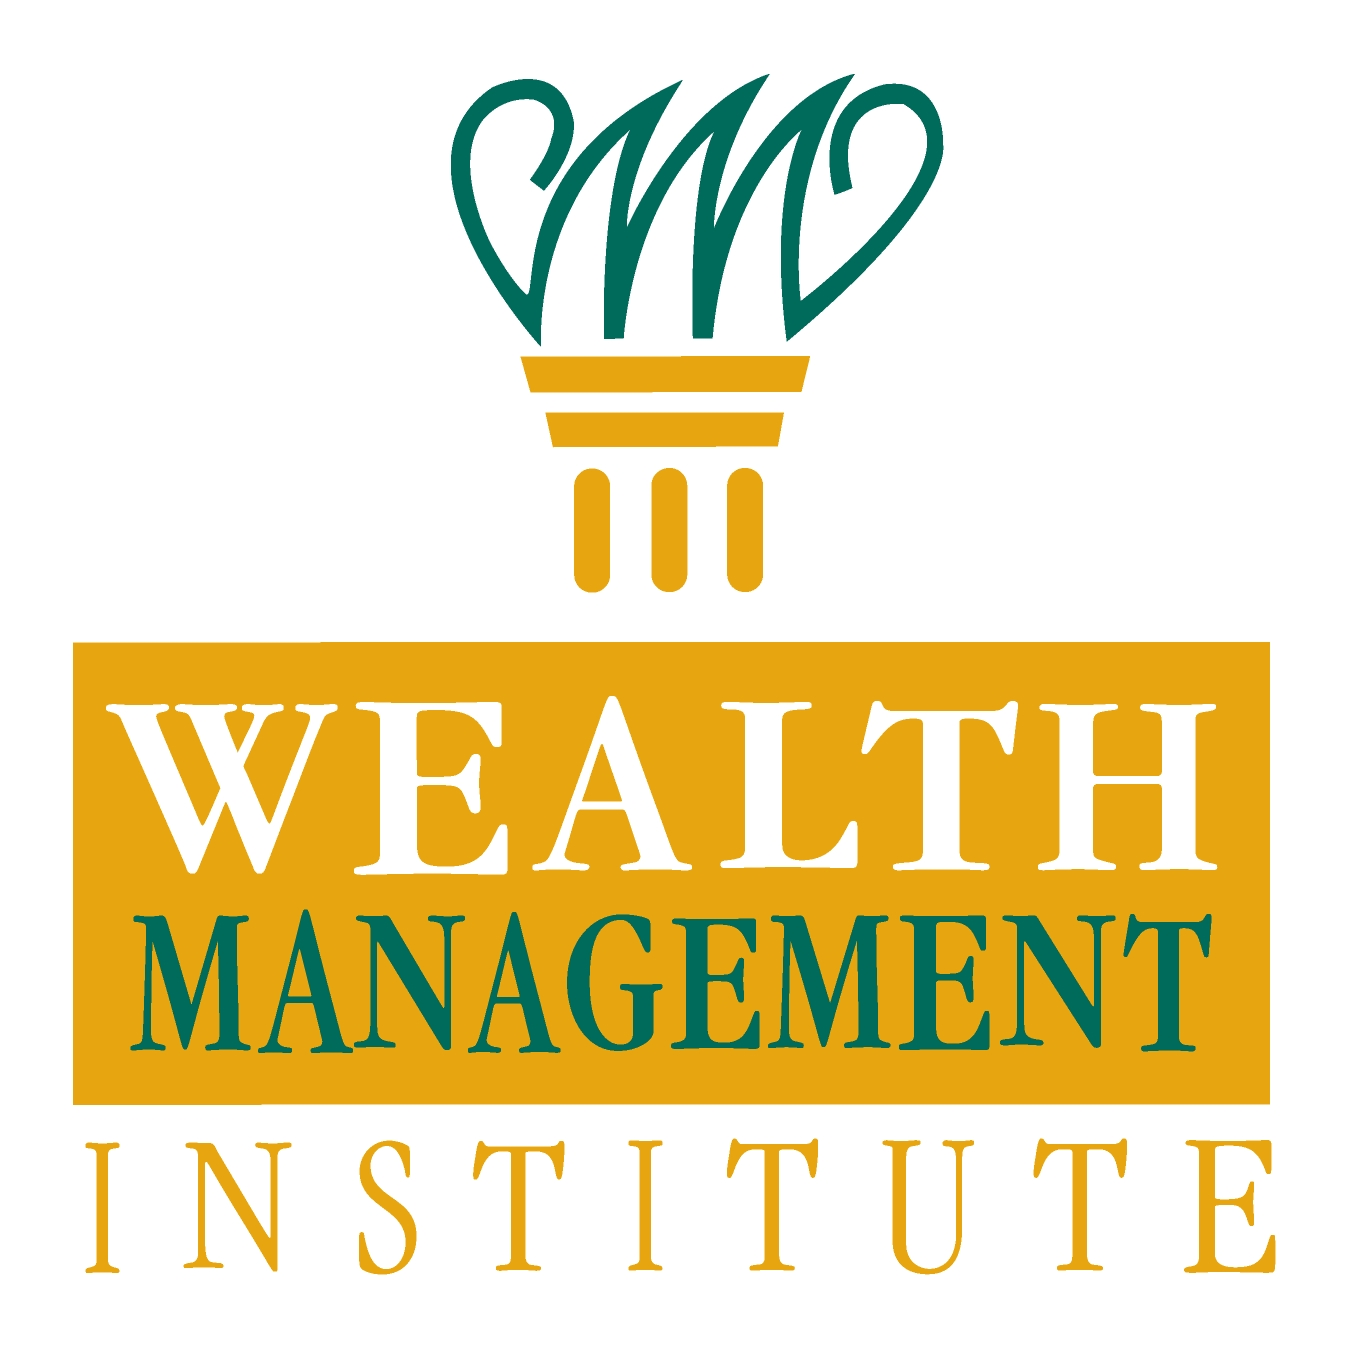 Wealth Management Institute